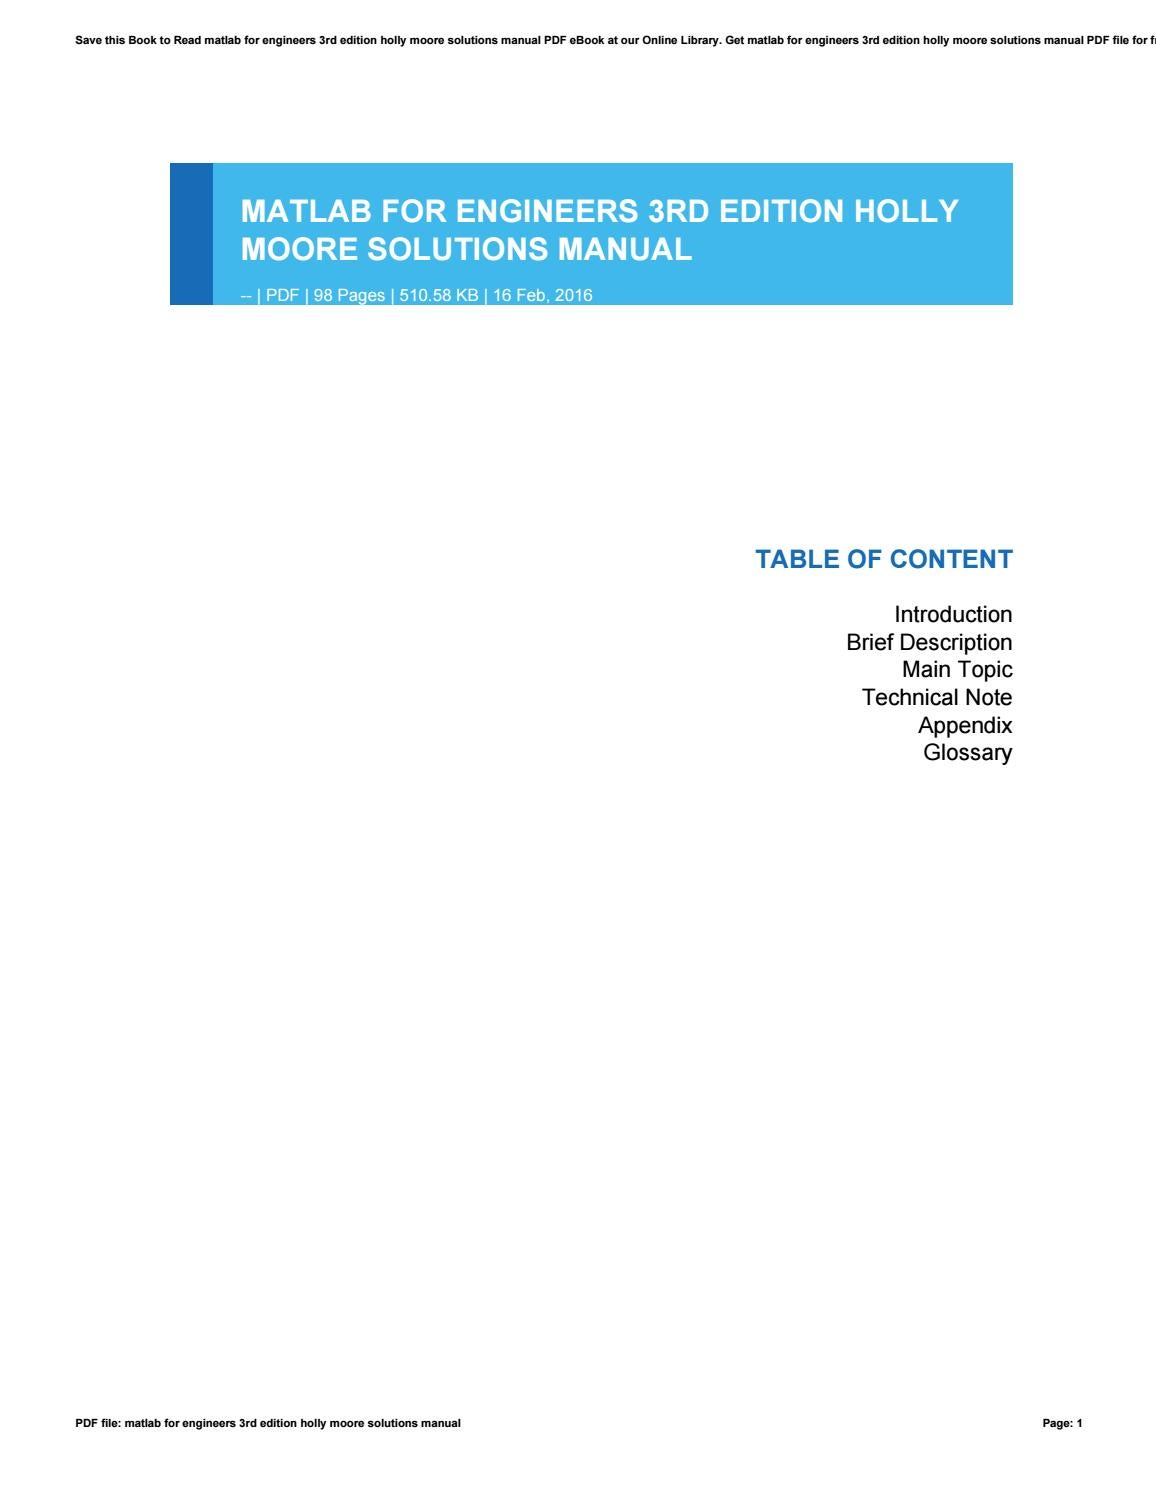 Matlab for engineers 3rd edition holly moore solutions manual by cutout04 -  issuu